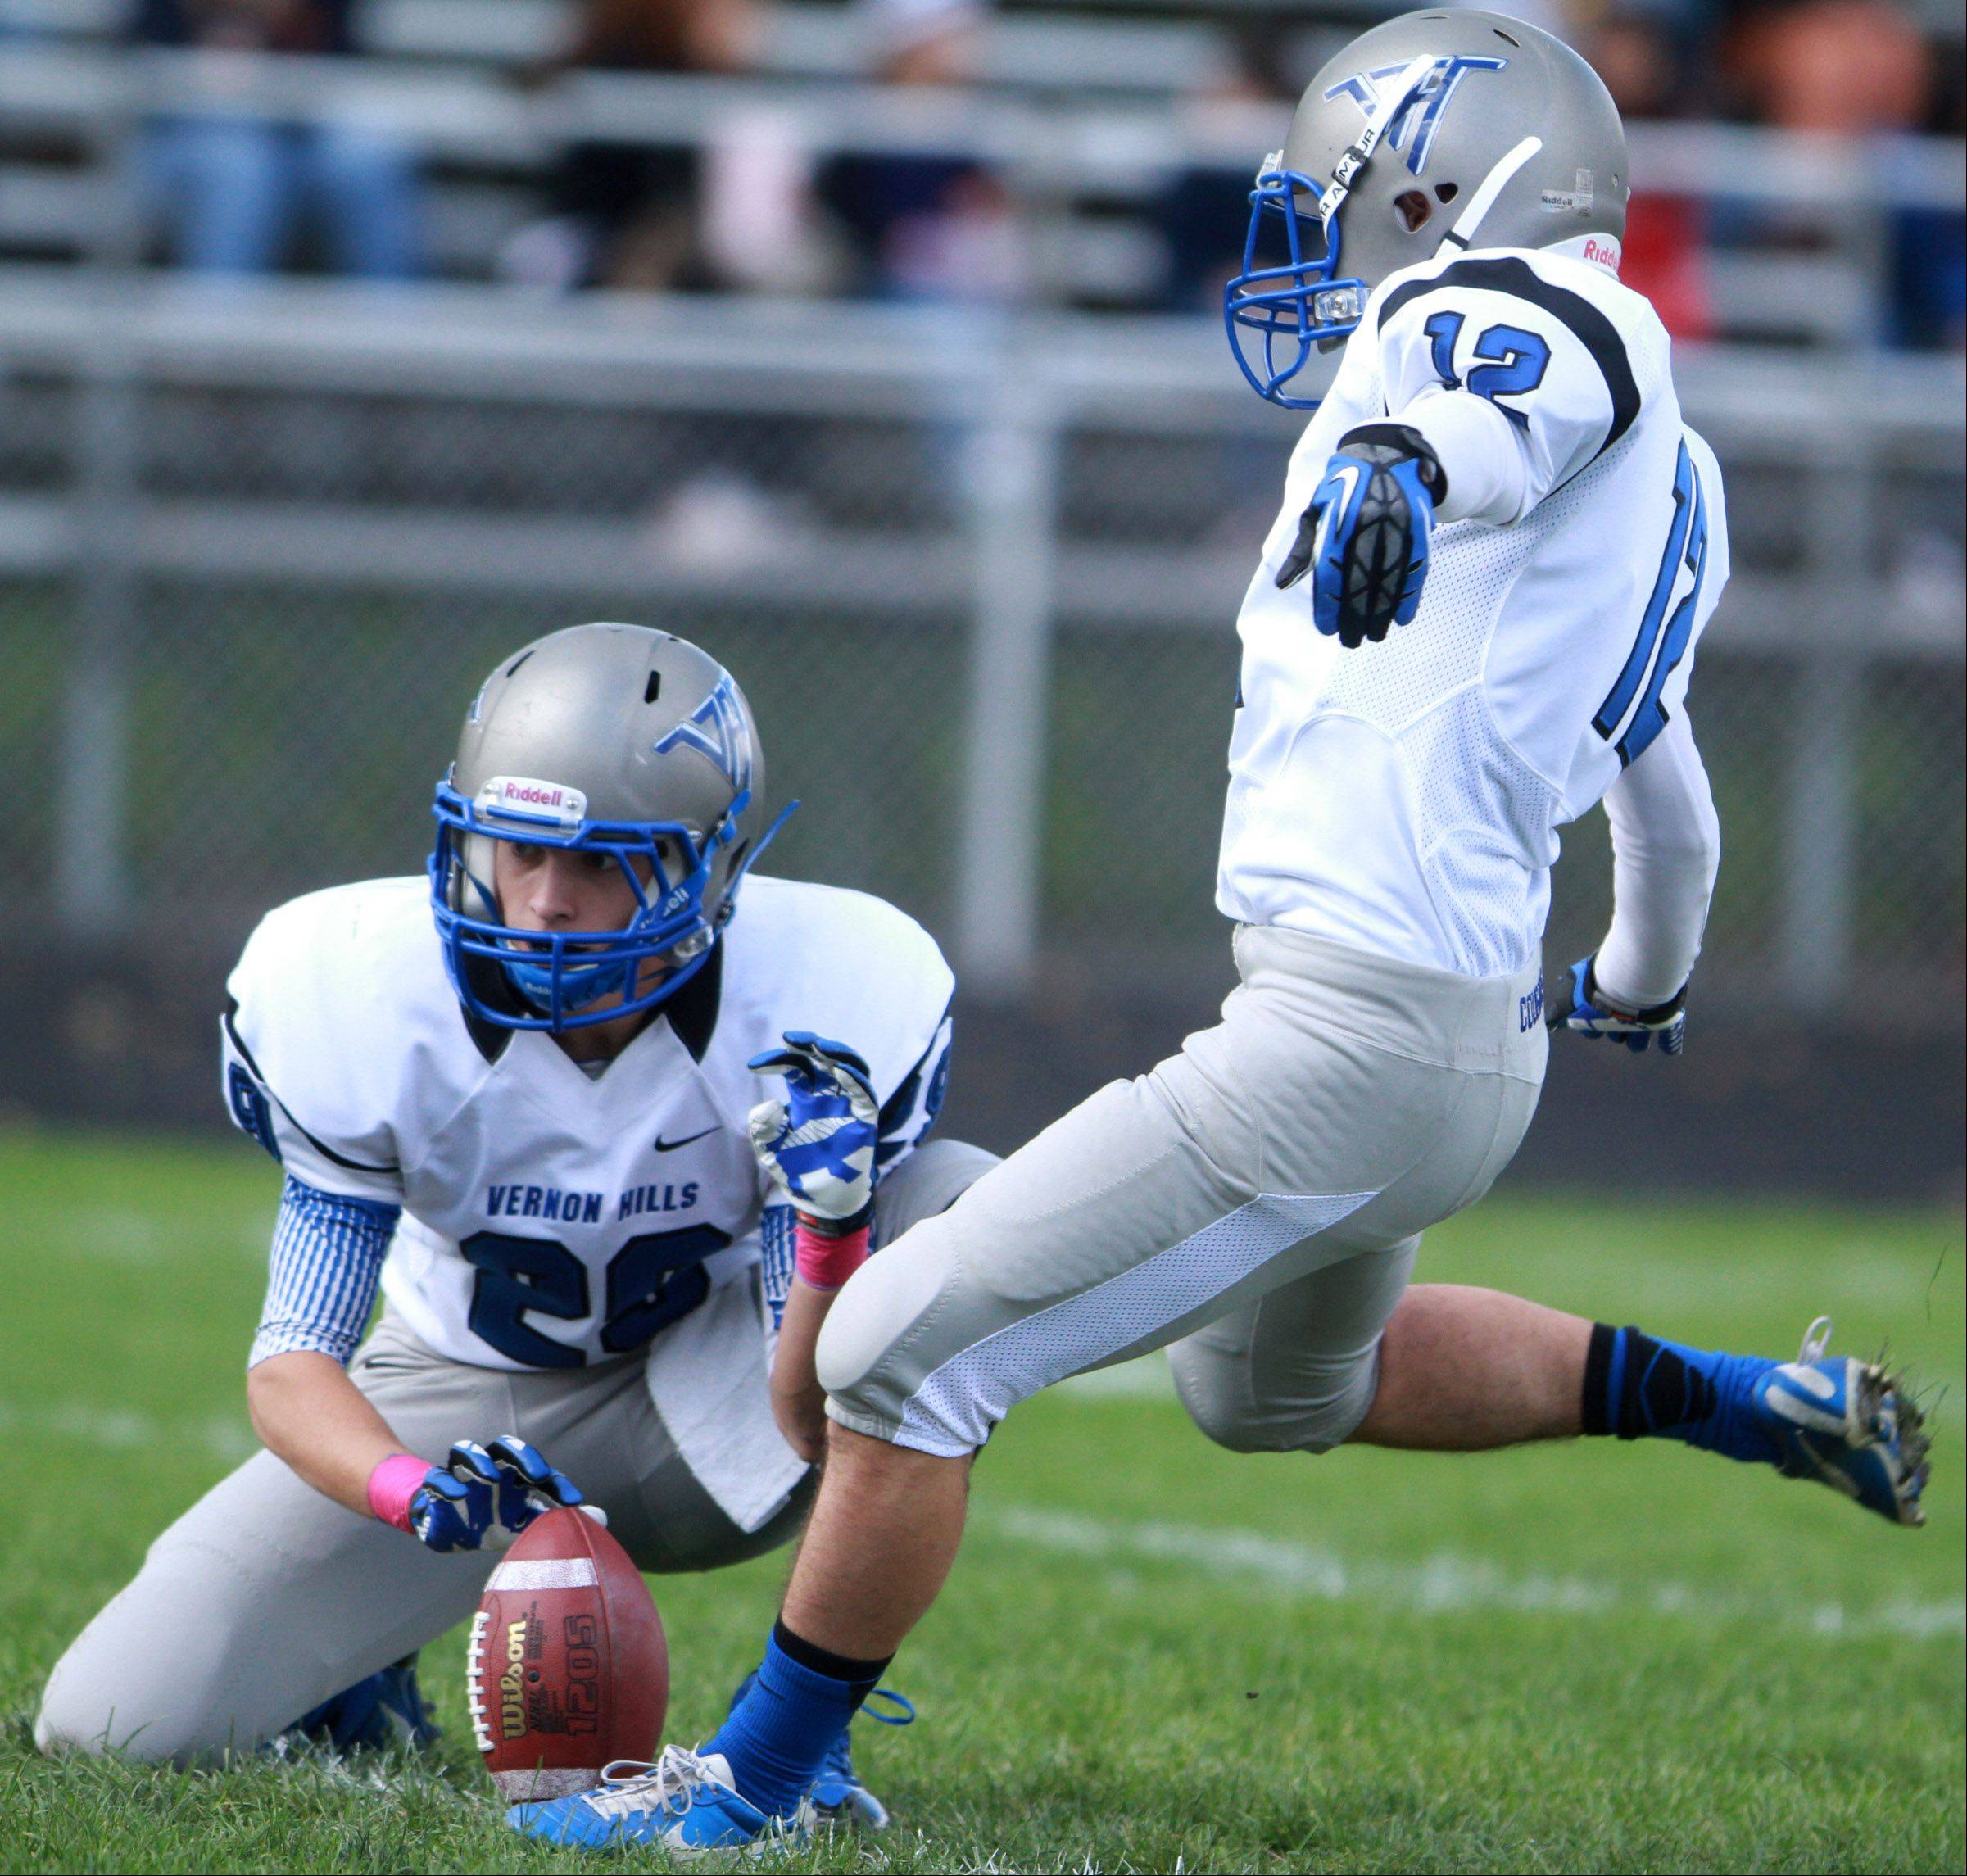 Vernon Hills kicker Jeremy Cohen kicks an extra point with Mike Mariella holding against Round Lake on Saturday. He was a busy athlete over the weekend, having made a big contribution in the Cougars' soccer victory Friday.